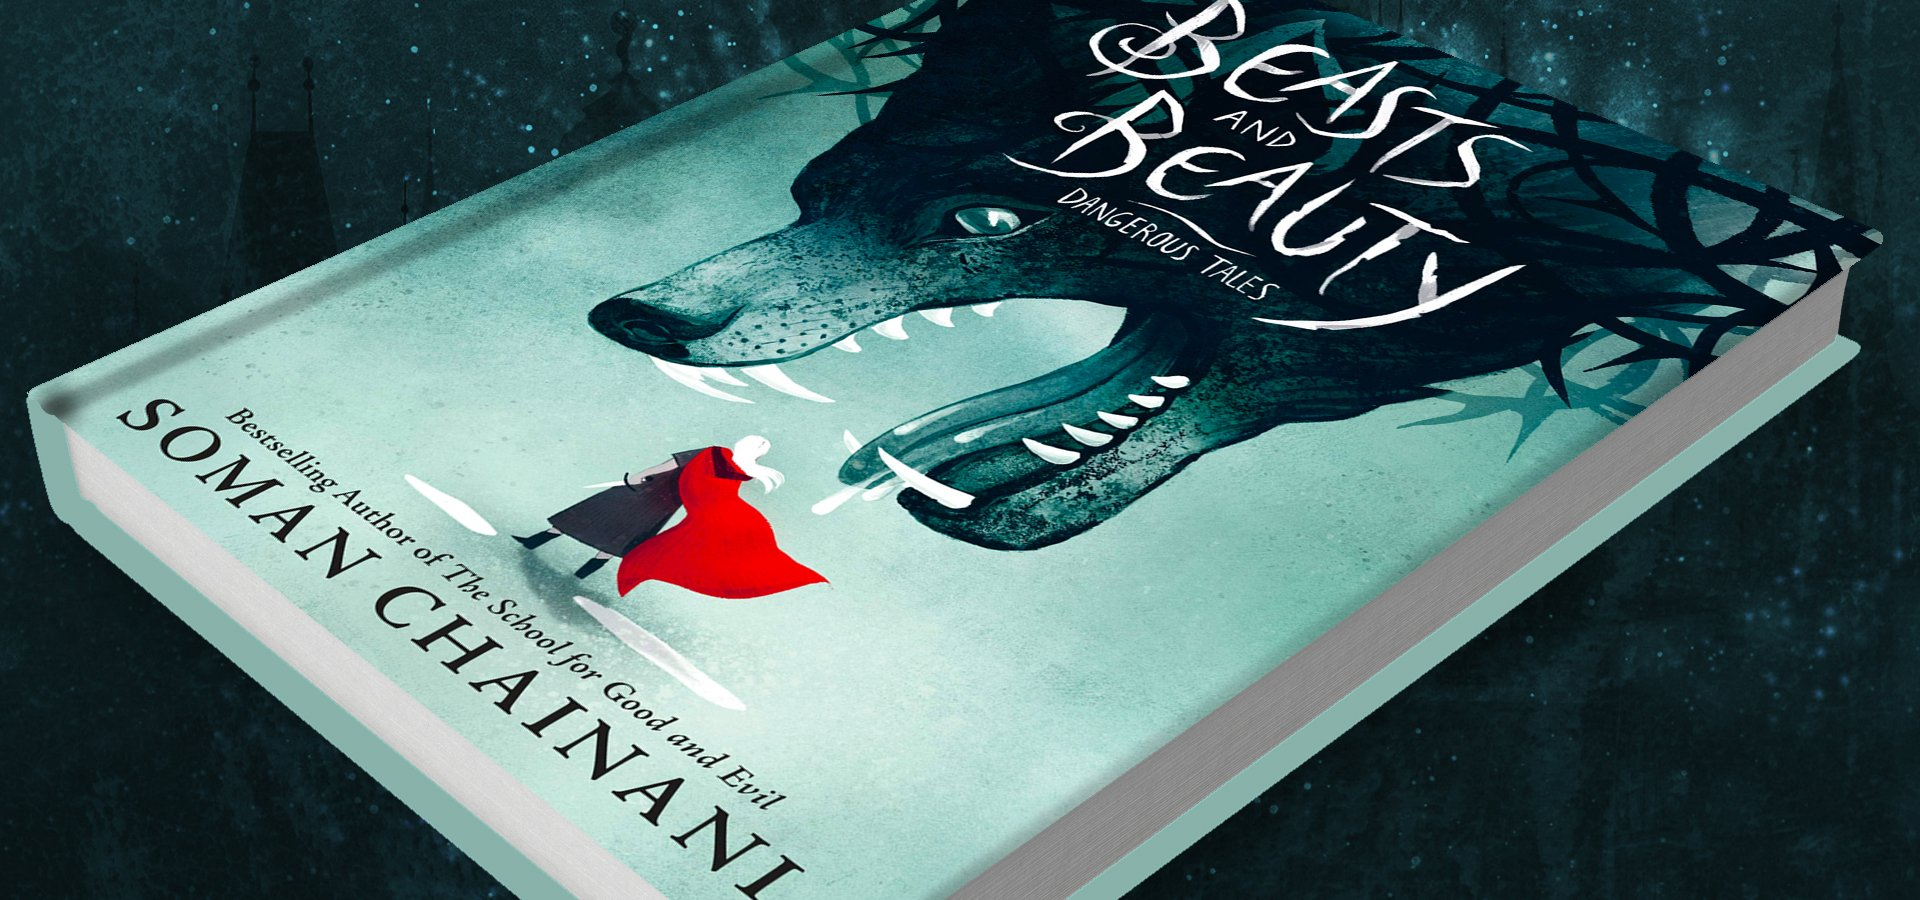 Beasts and Beauty: Dangerous Tales by Soman Chainani